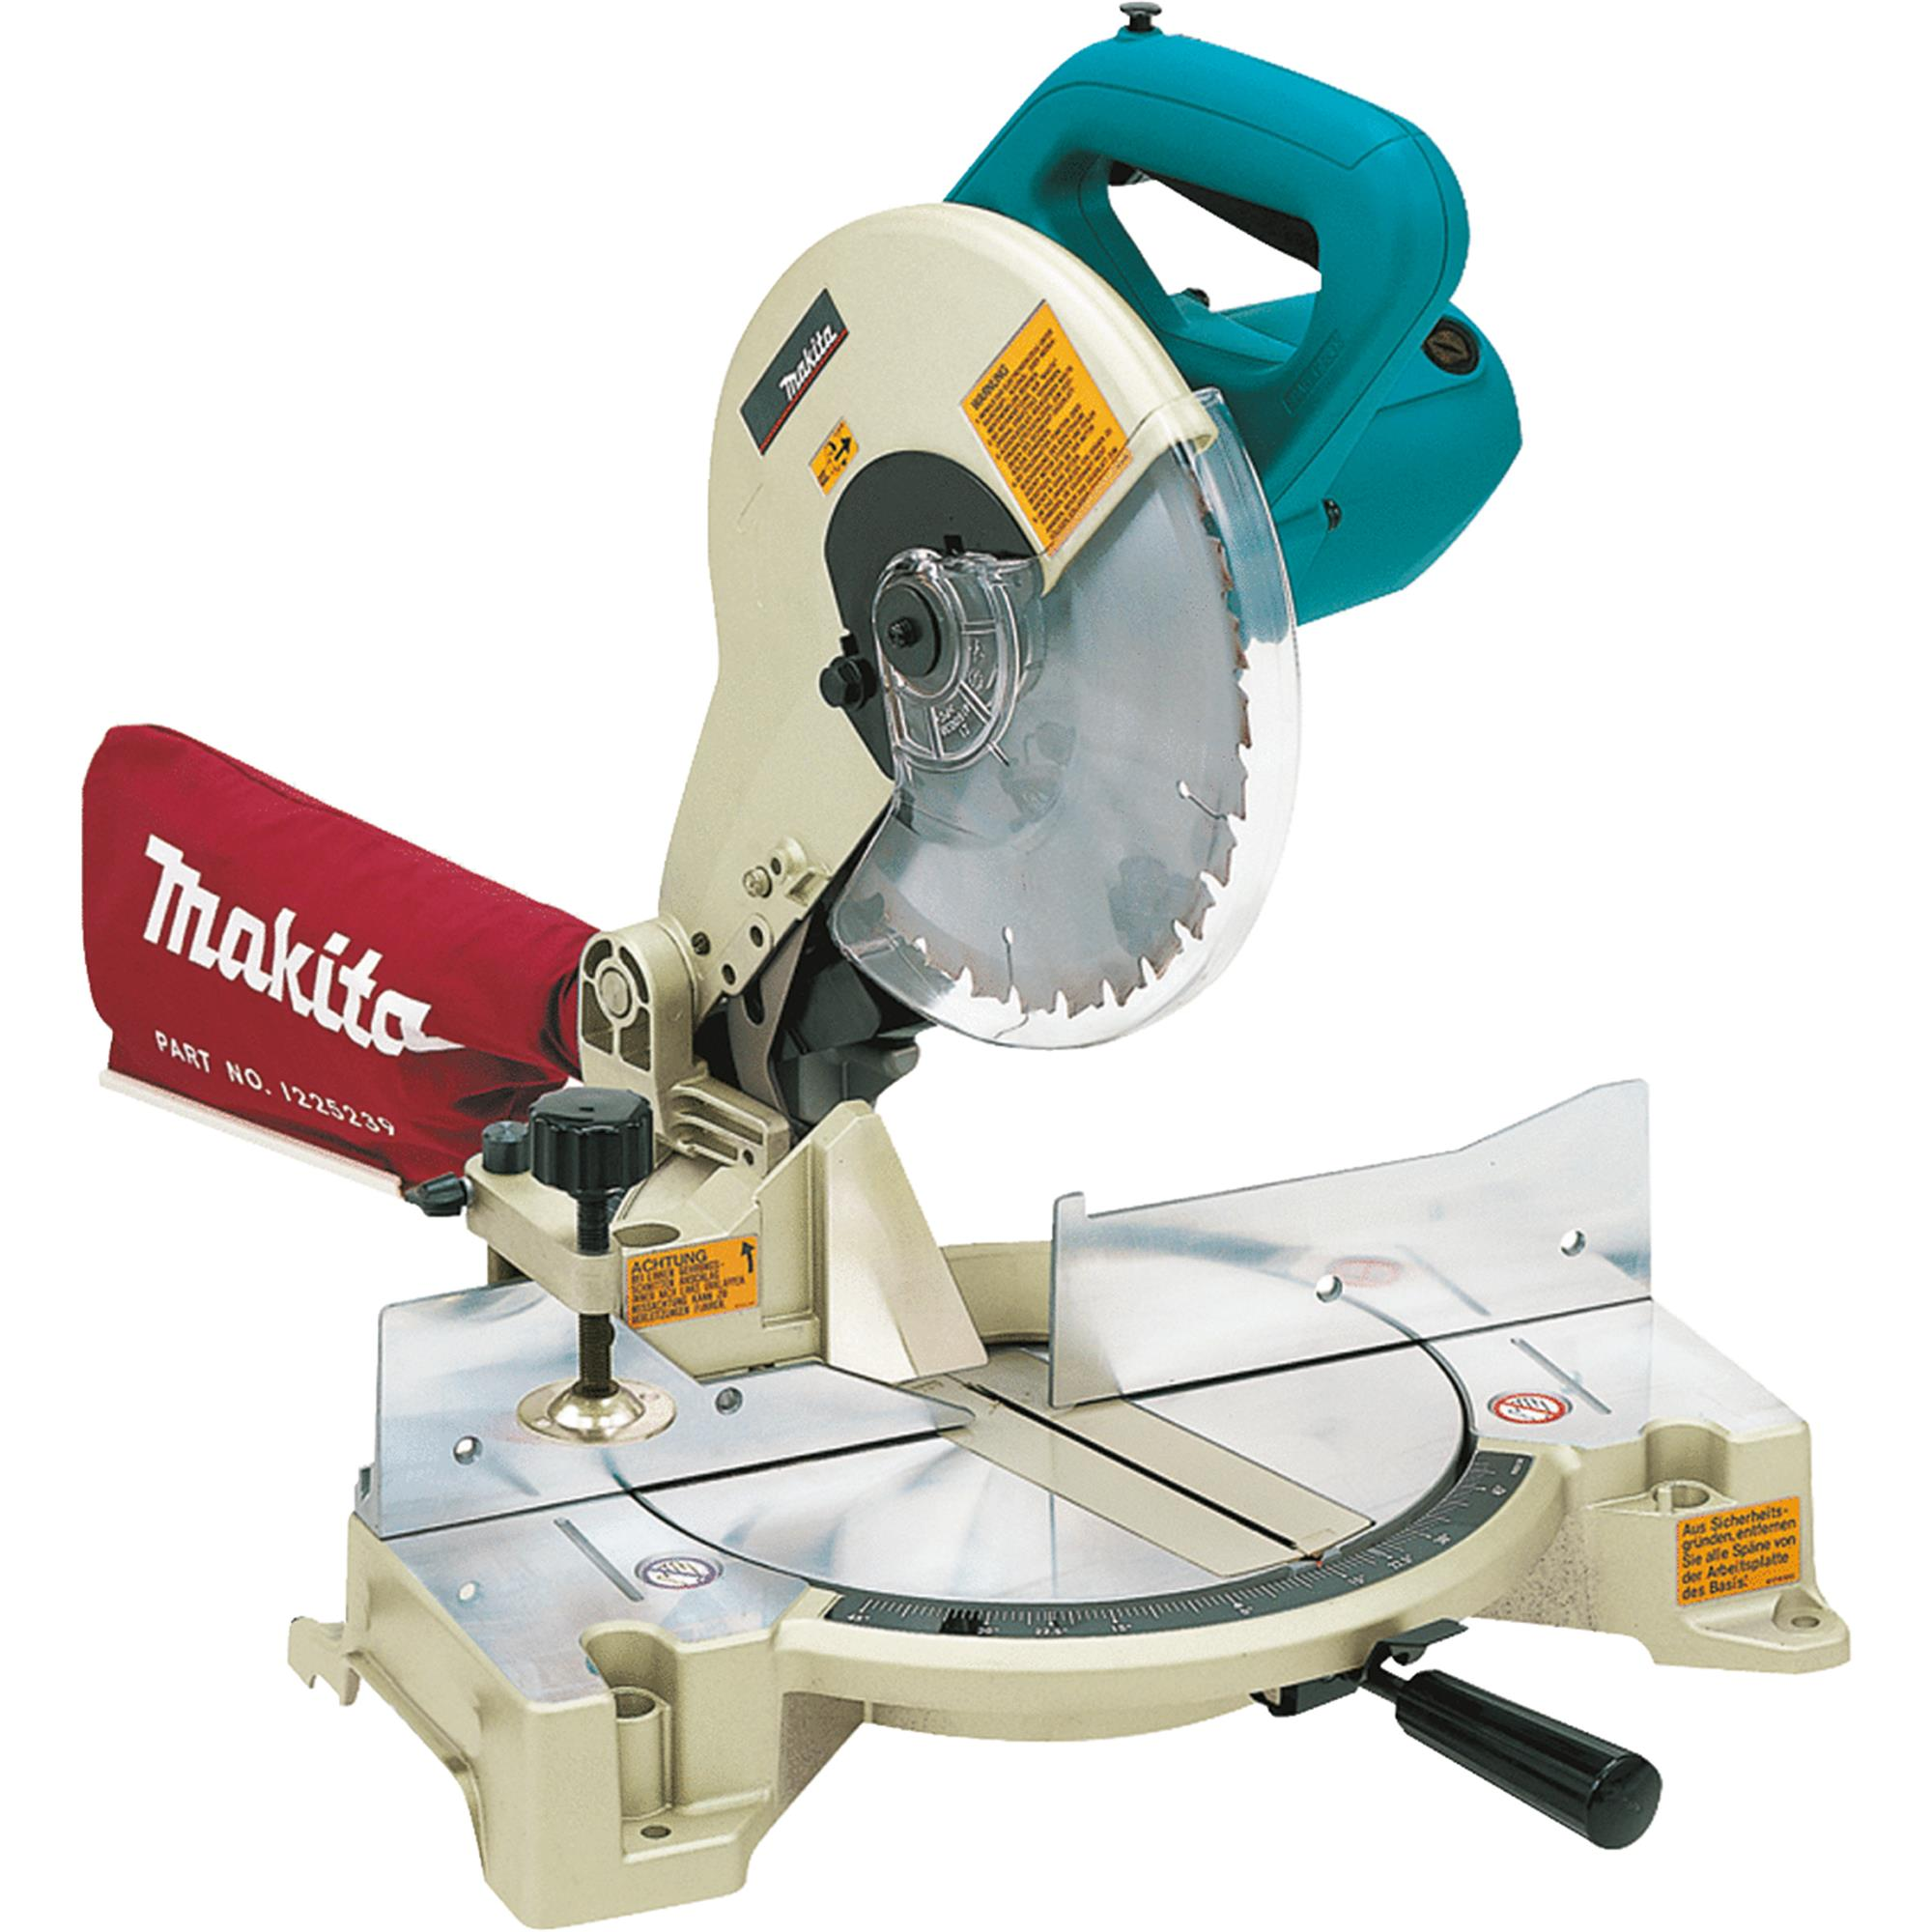 Makita 10 In. Compound Miter Saw